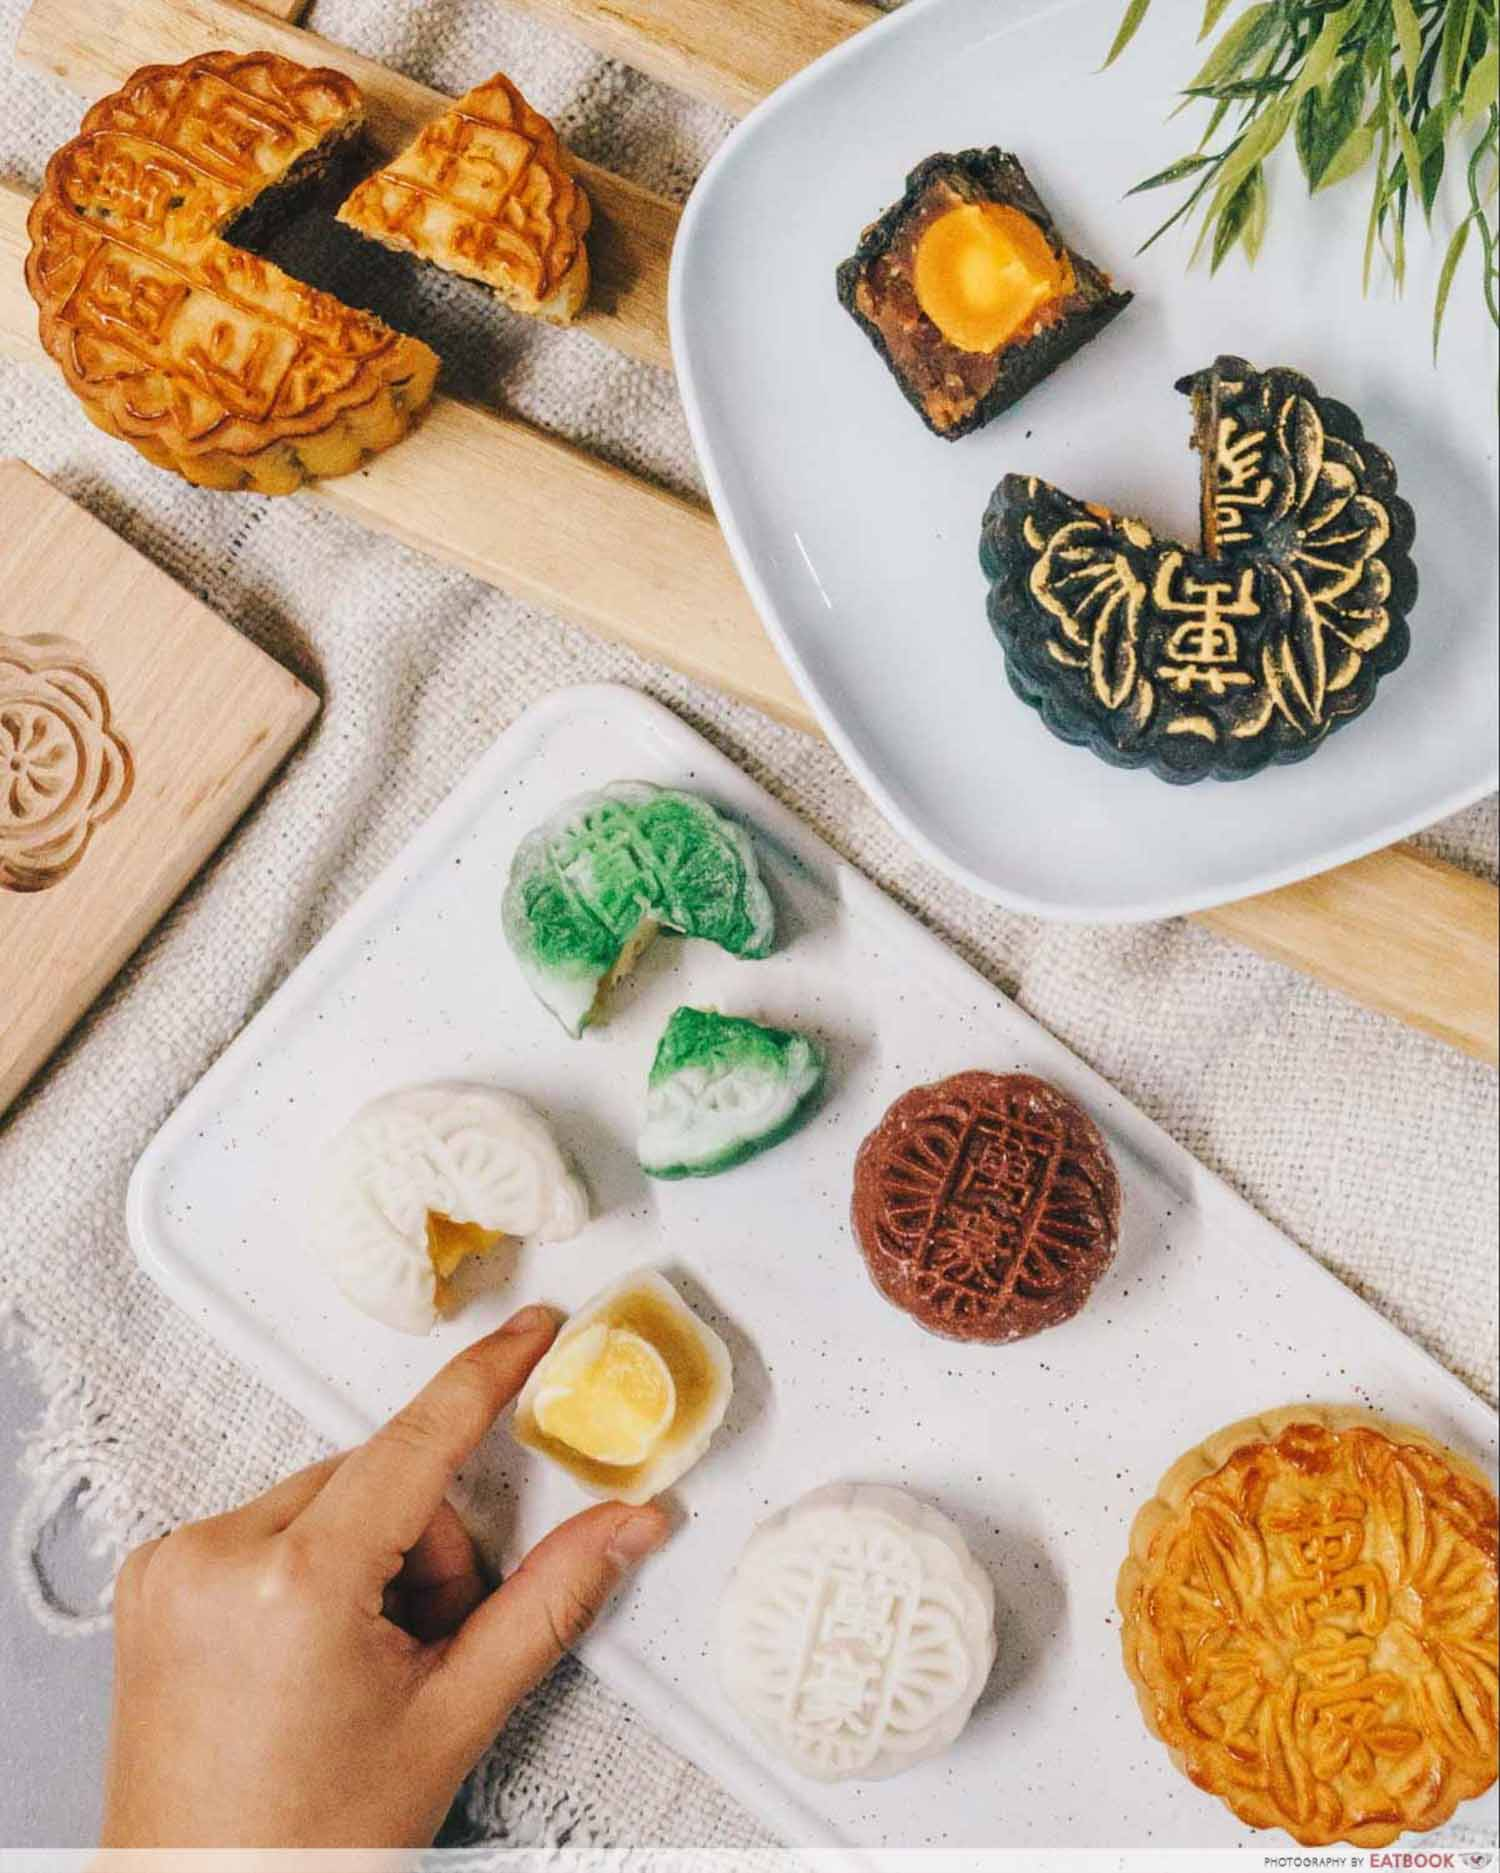 Mooncakes - Mocha and coconut